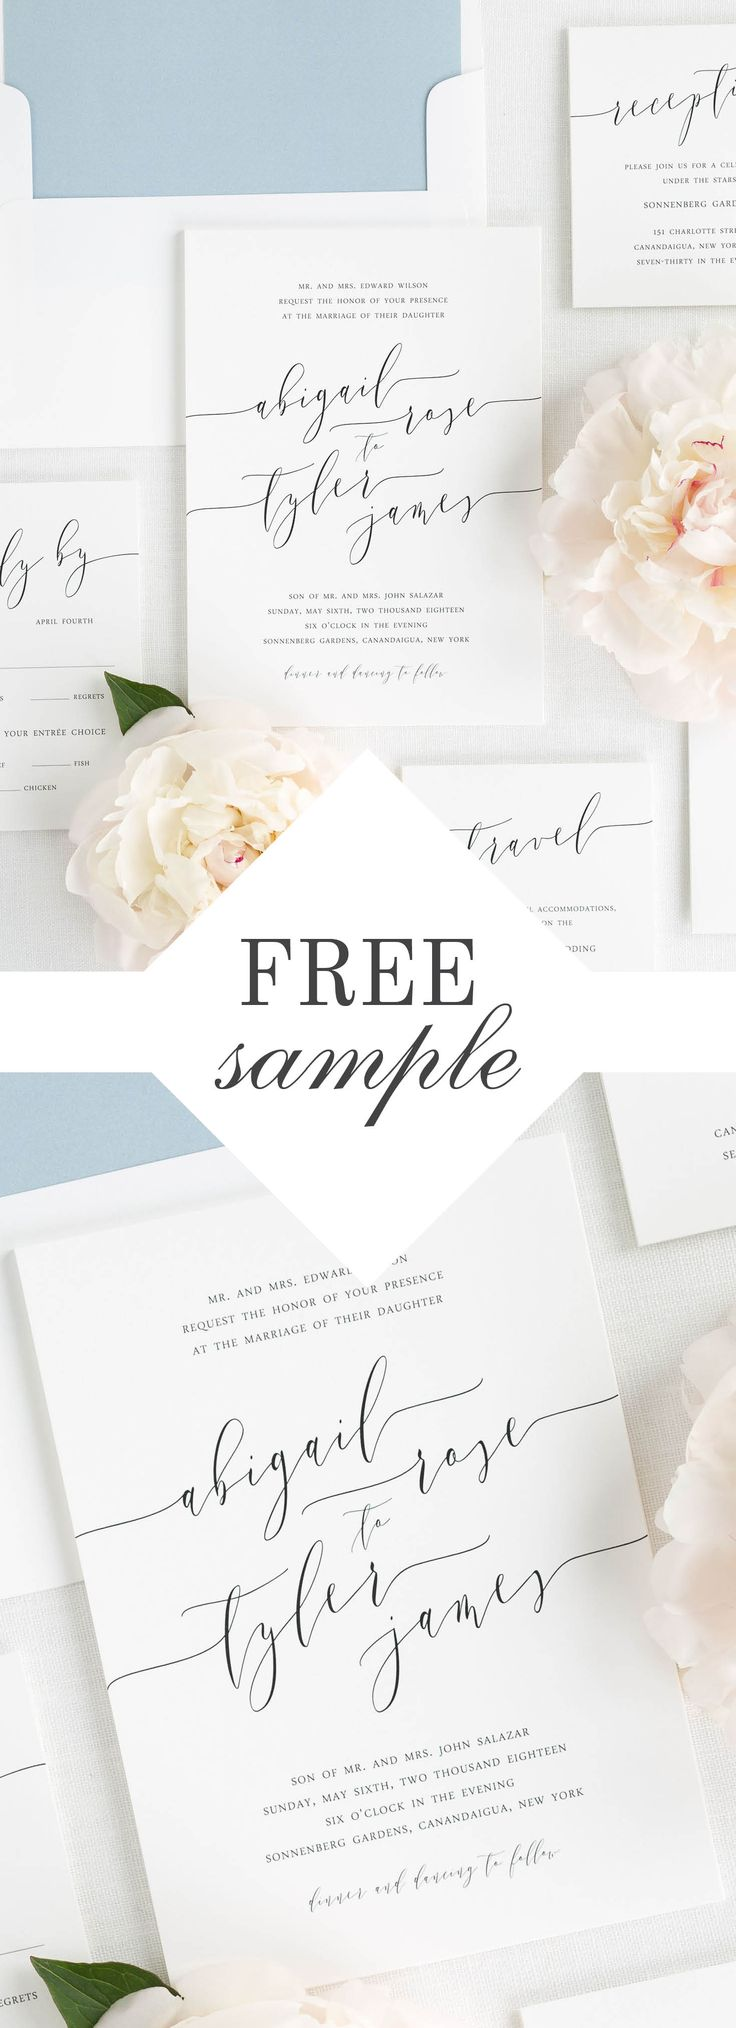 Brand your wedding from start to finish with our gorgeous Romantic Calligraphy suite. Request a free sample kit and experience our quality and luxurious paper options in person.